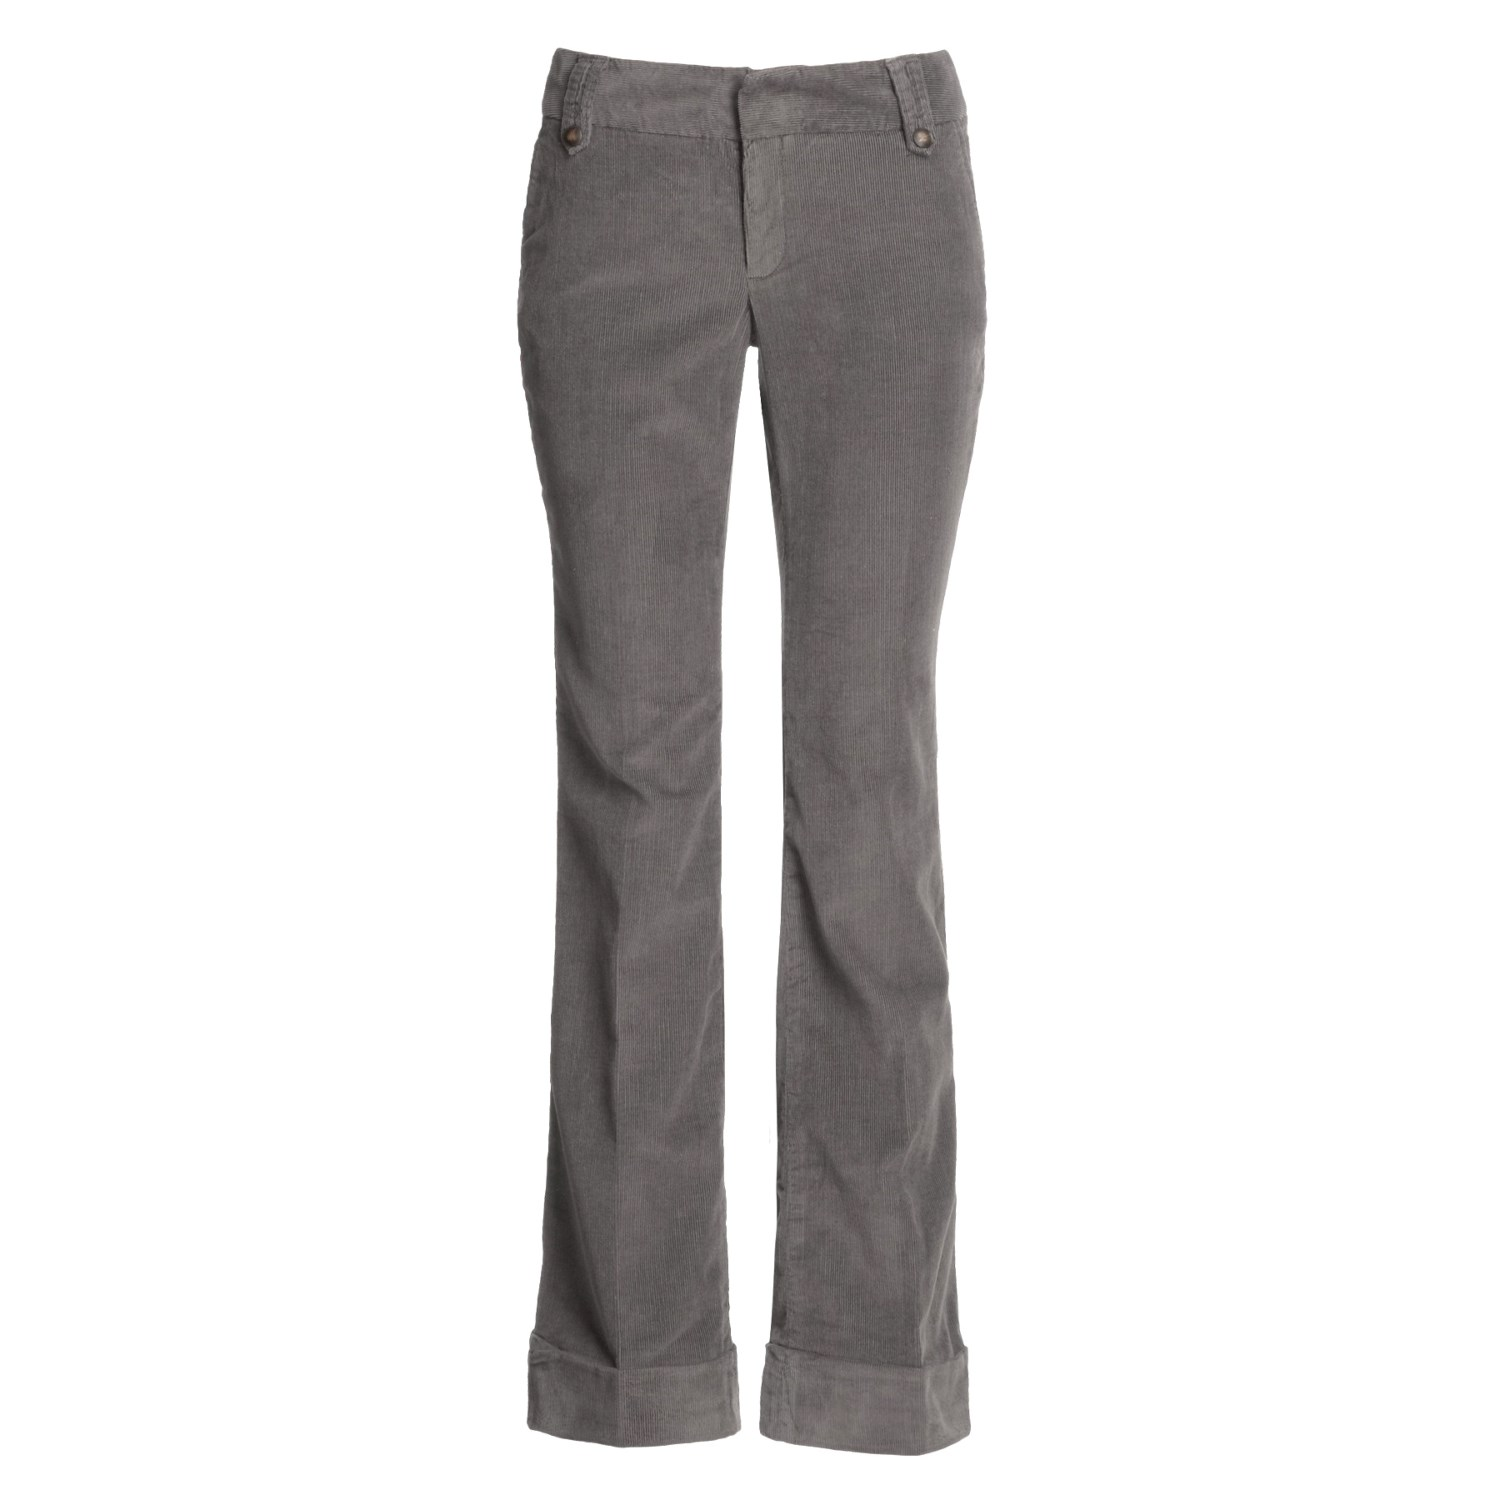 Browse Land's End to find women's corduroy pants & corduroy jeans. Corduroys are a beloved cold-weather staple—we have the most variety in women's corduroys.